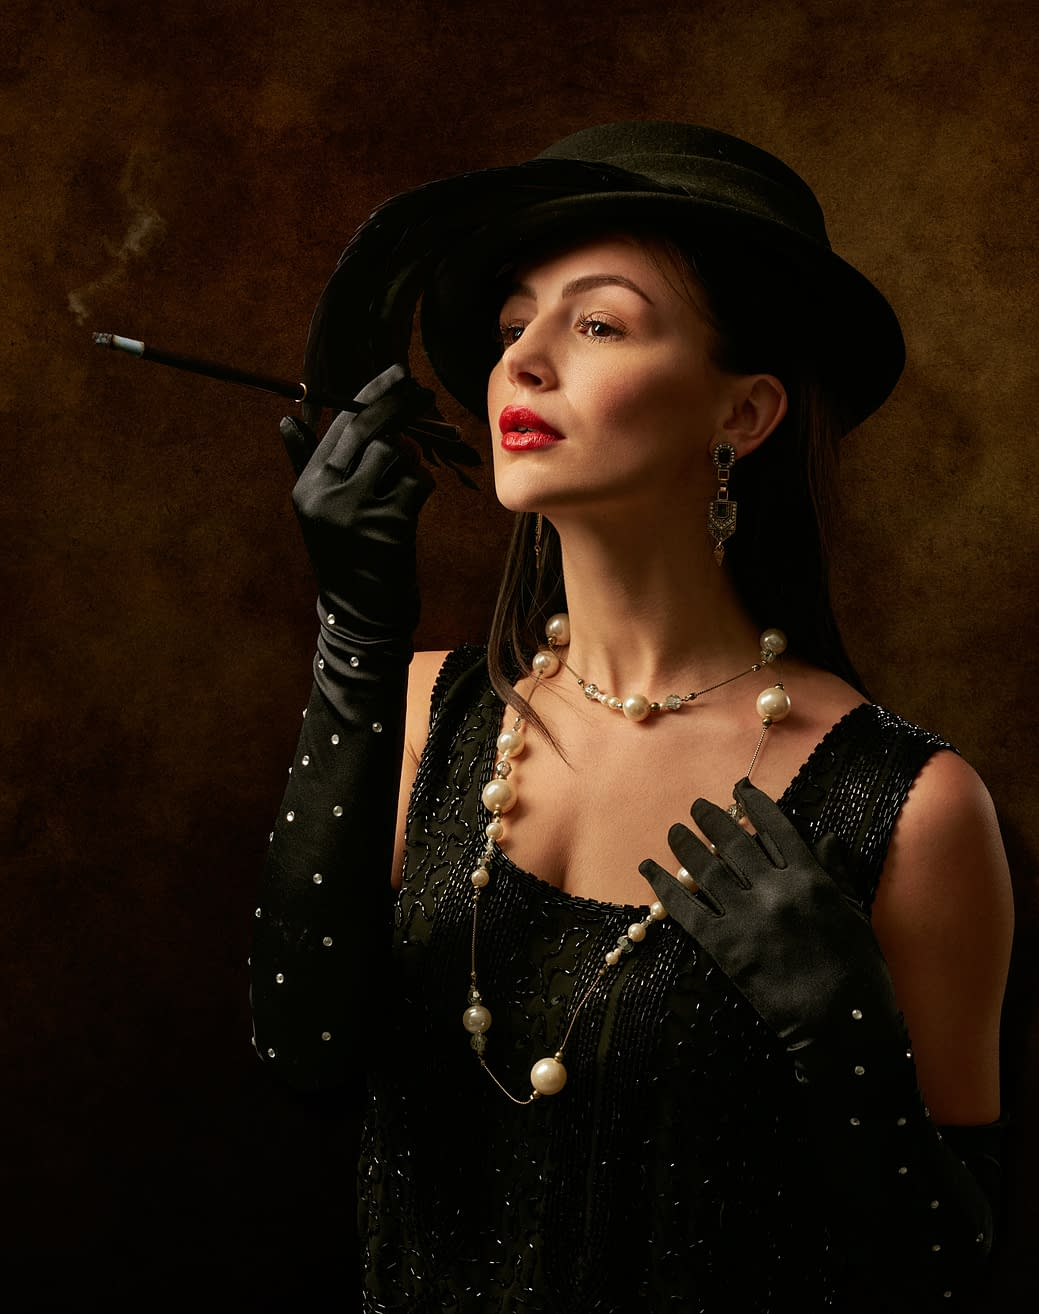 woman in black dreaa and black gloves, black hat, with pearls and earings